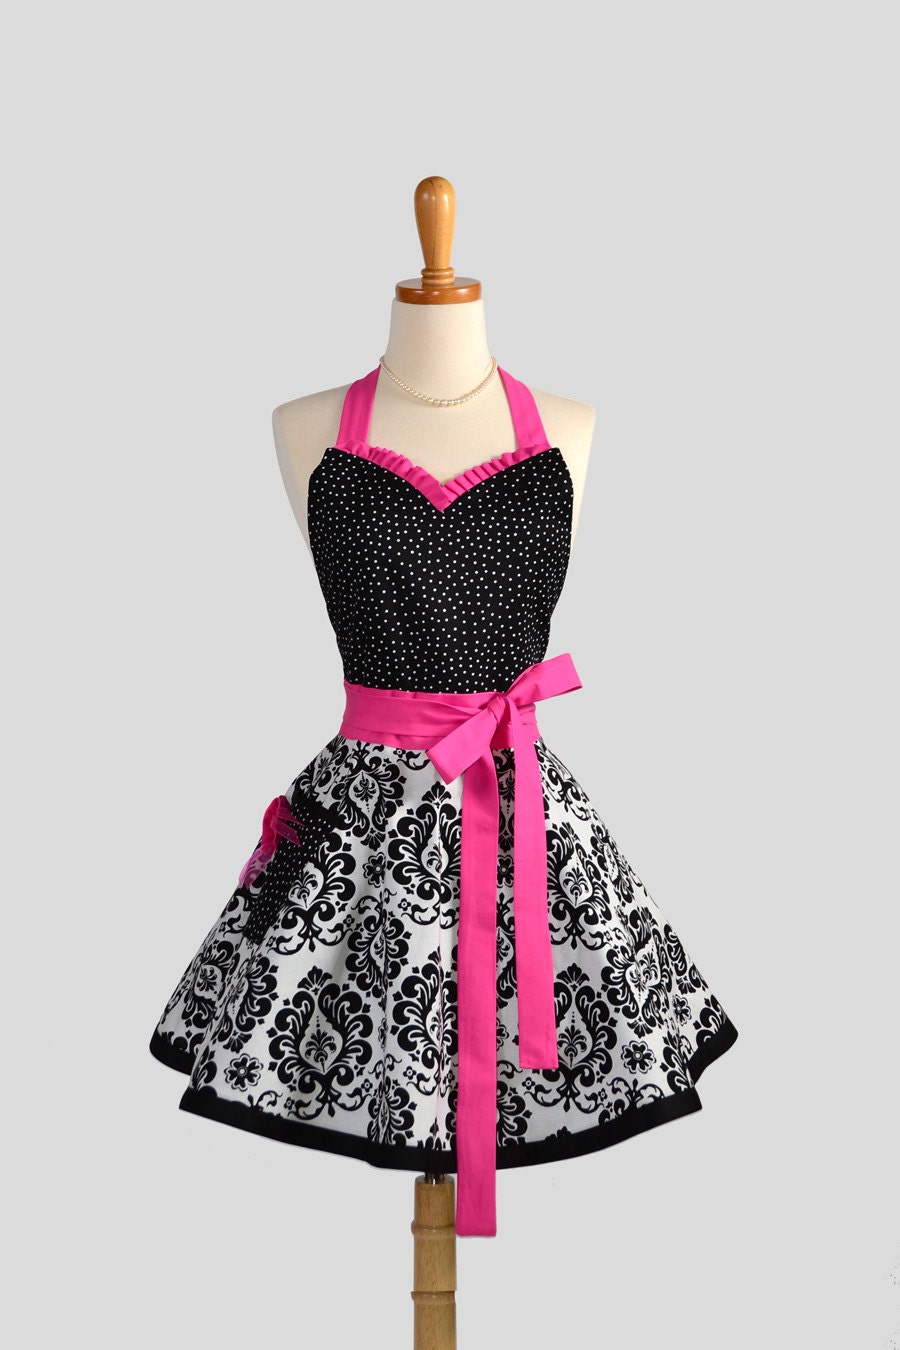 Sweetheart Retro Apron / Cute Womens Apron in Black and White Damask Black Dots and Hot Pink a Sexy Apron